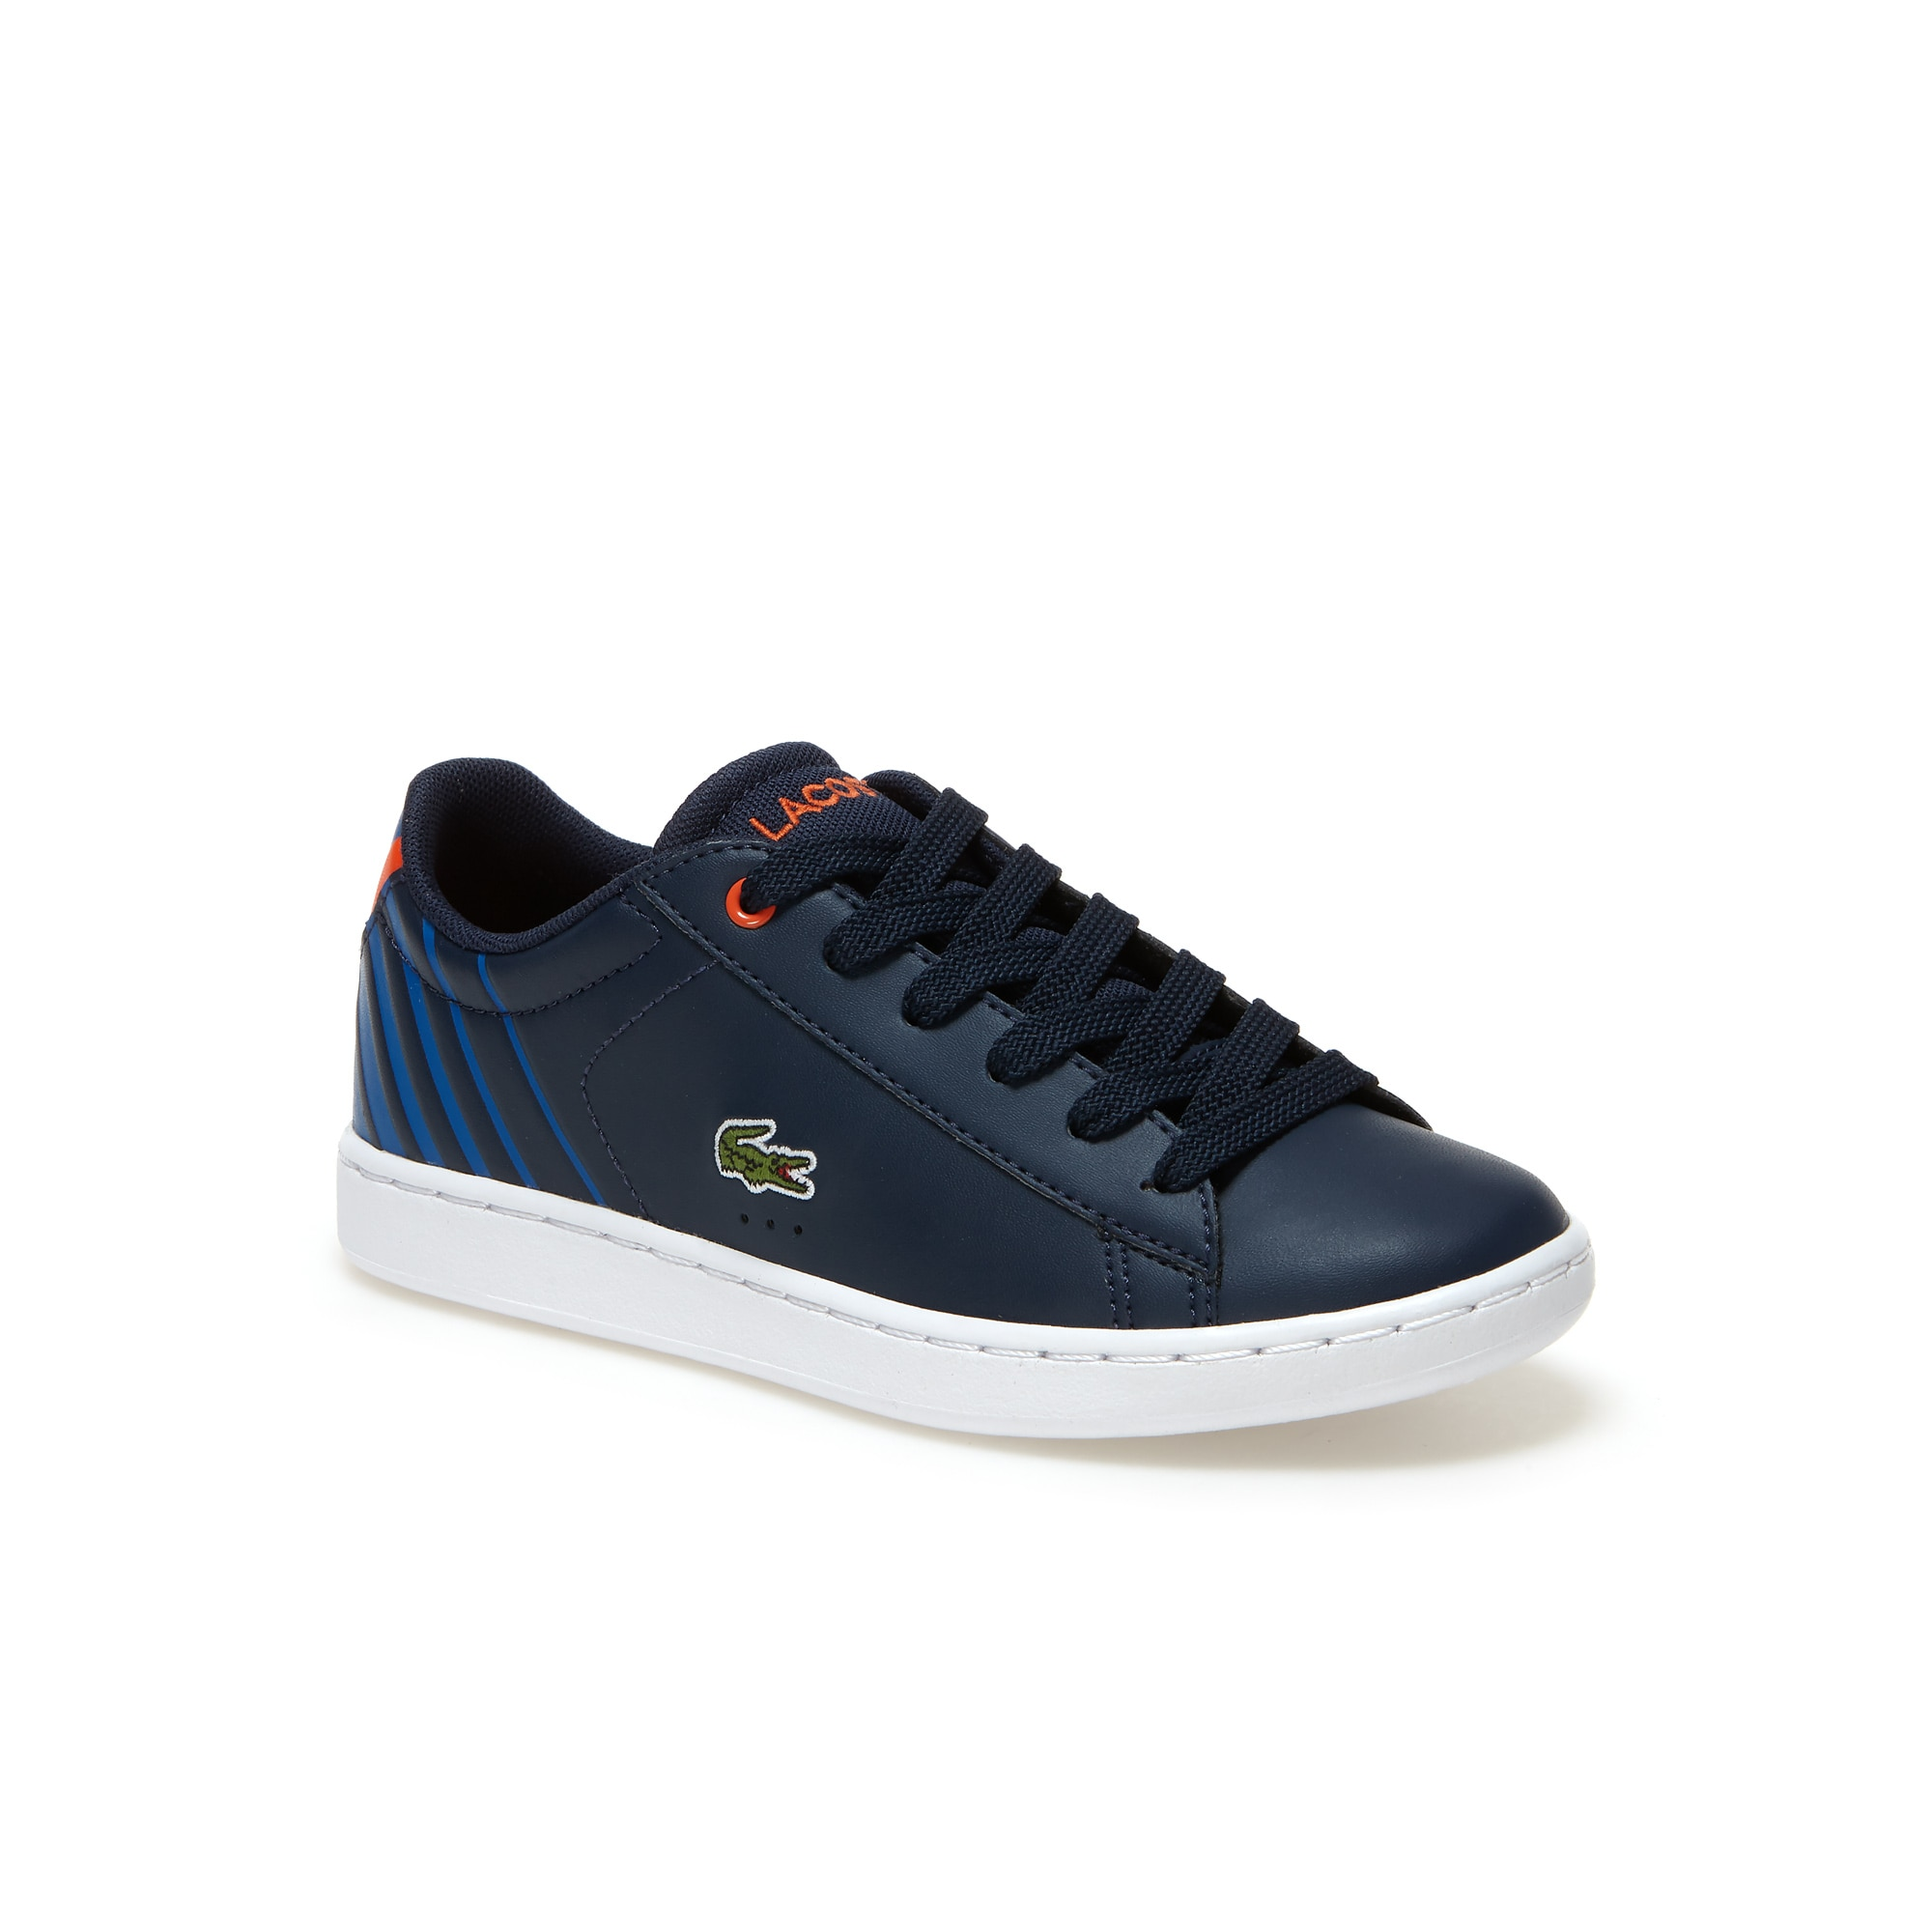 Childrens' Carnaby Evo Leather-look Trainers with Breathable mesh linings